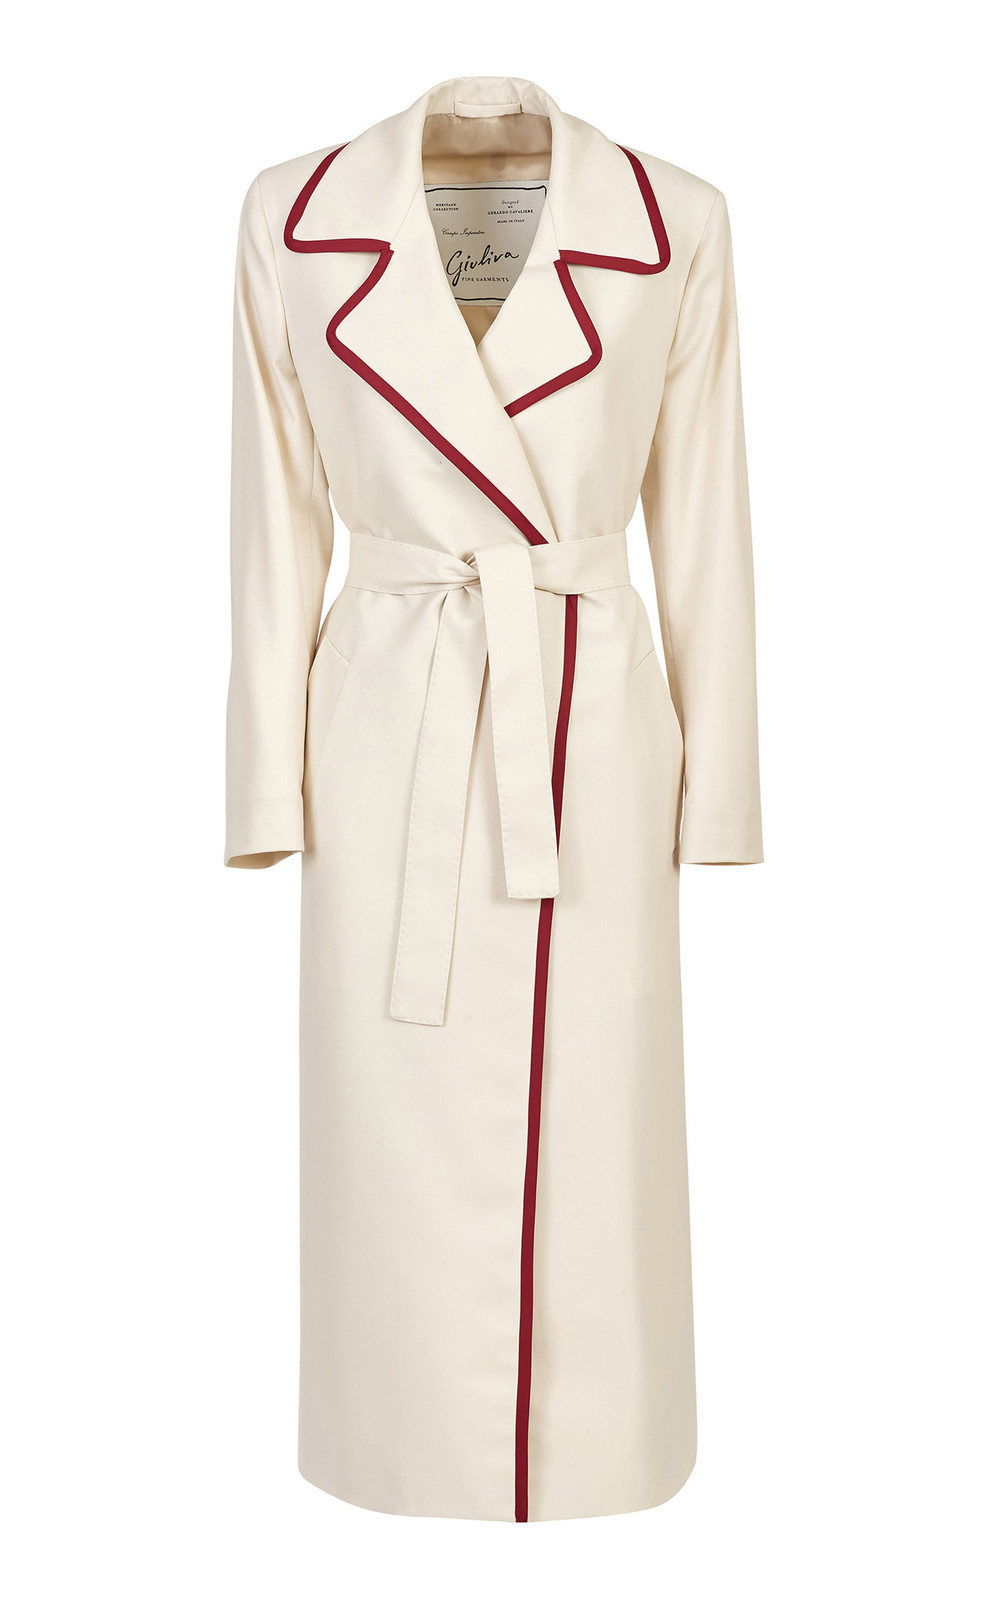 Giuliva Heritage Collection Belted Piped Wool-Twill Coat in neutral